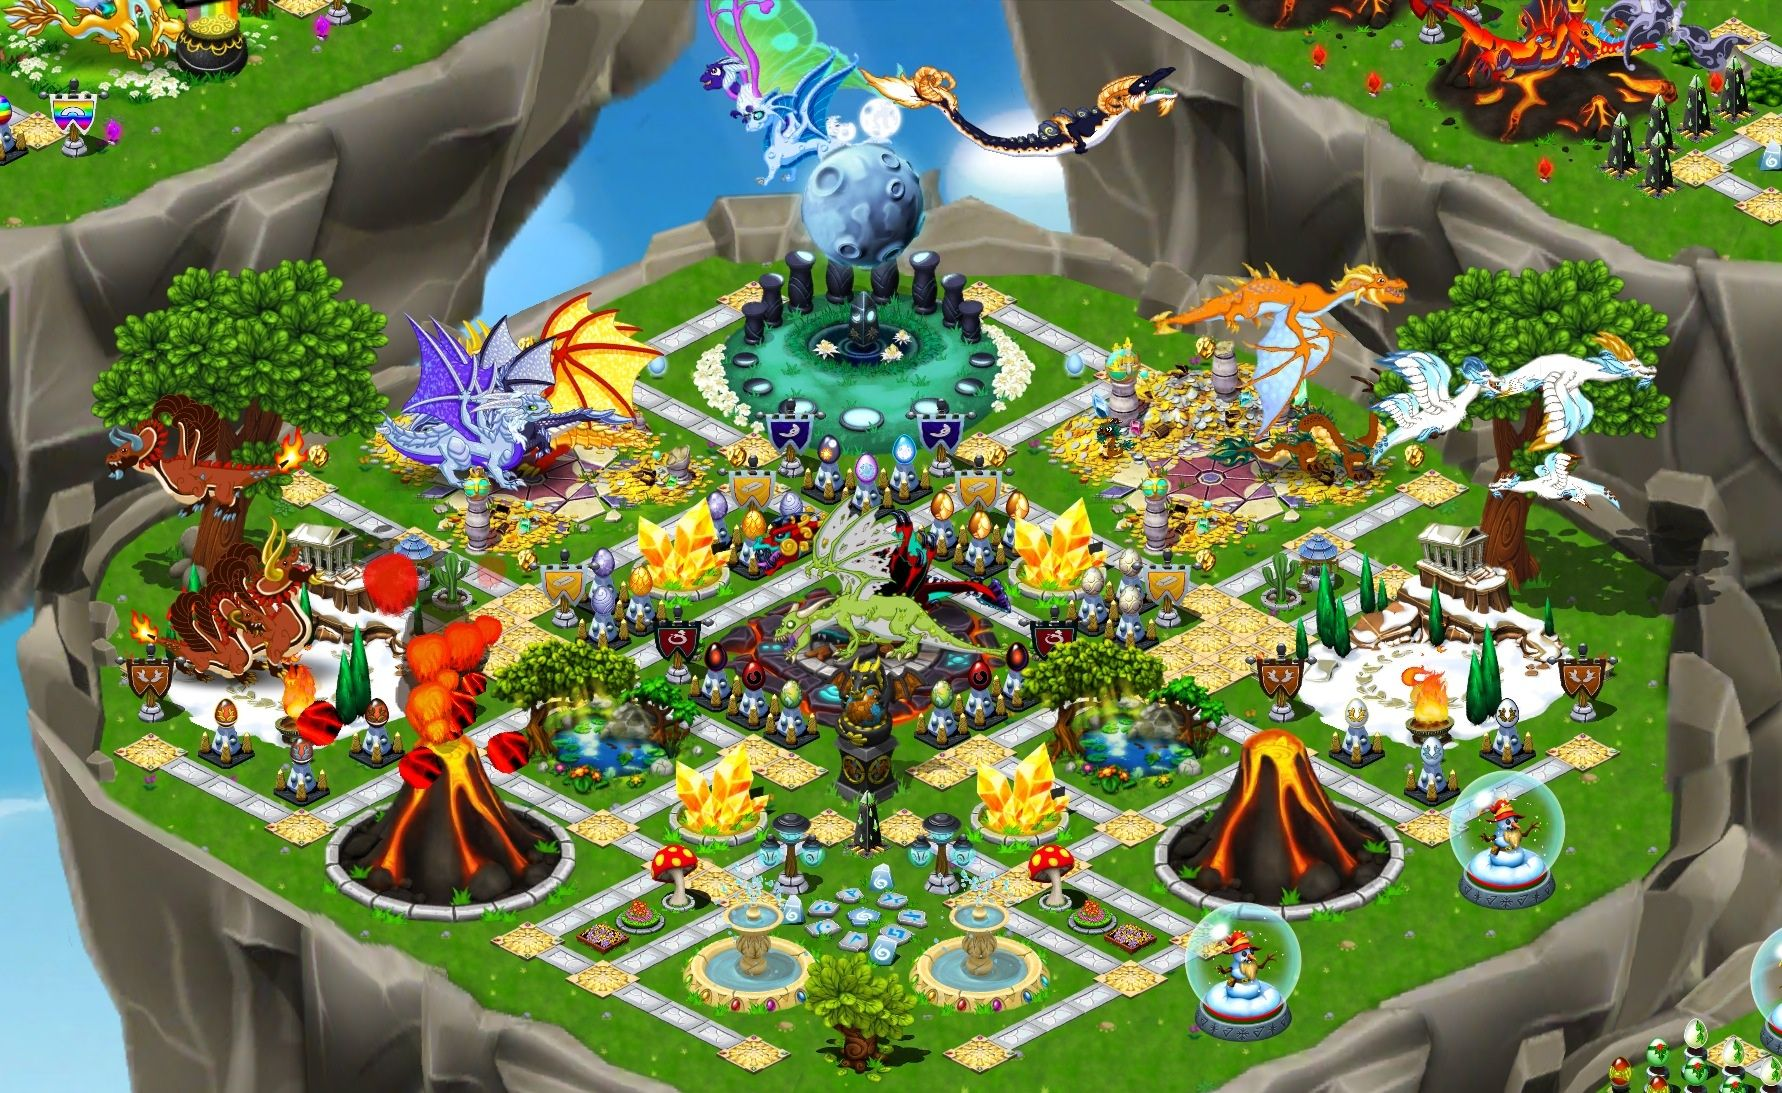 DragonVale Breeding Chart | All Dragonvale Parks | Park, Dungeons and dragons, Table decorations